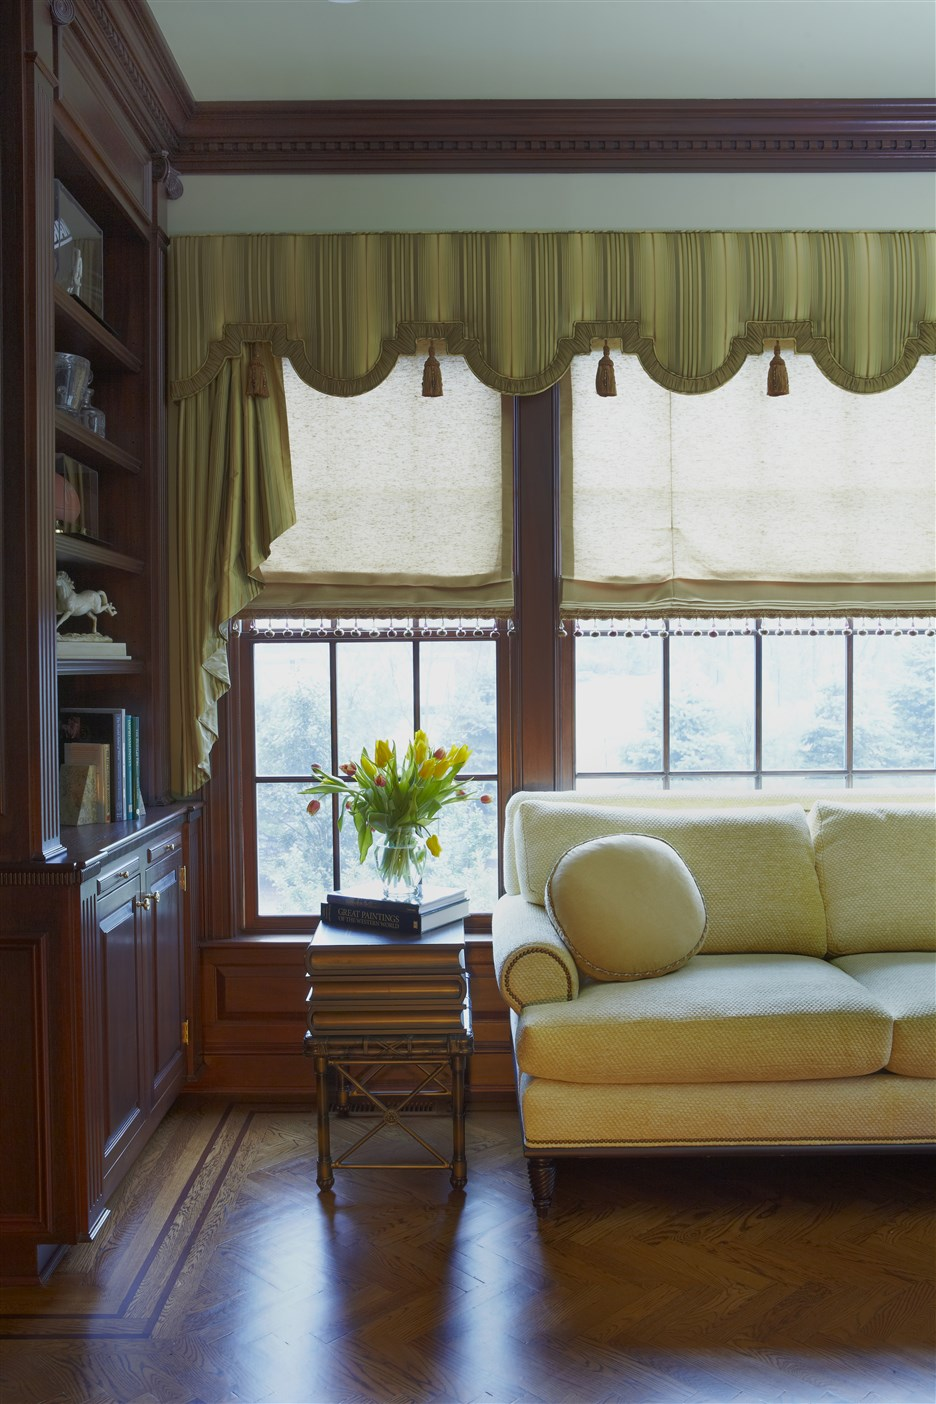 Living room with wide windows